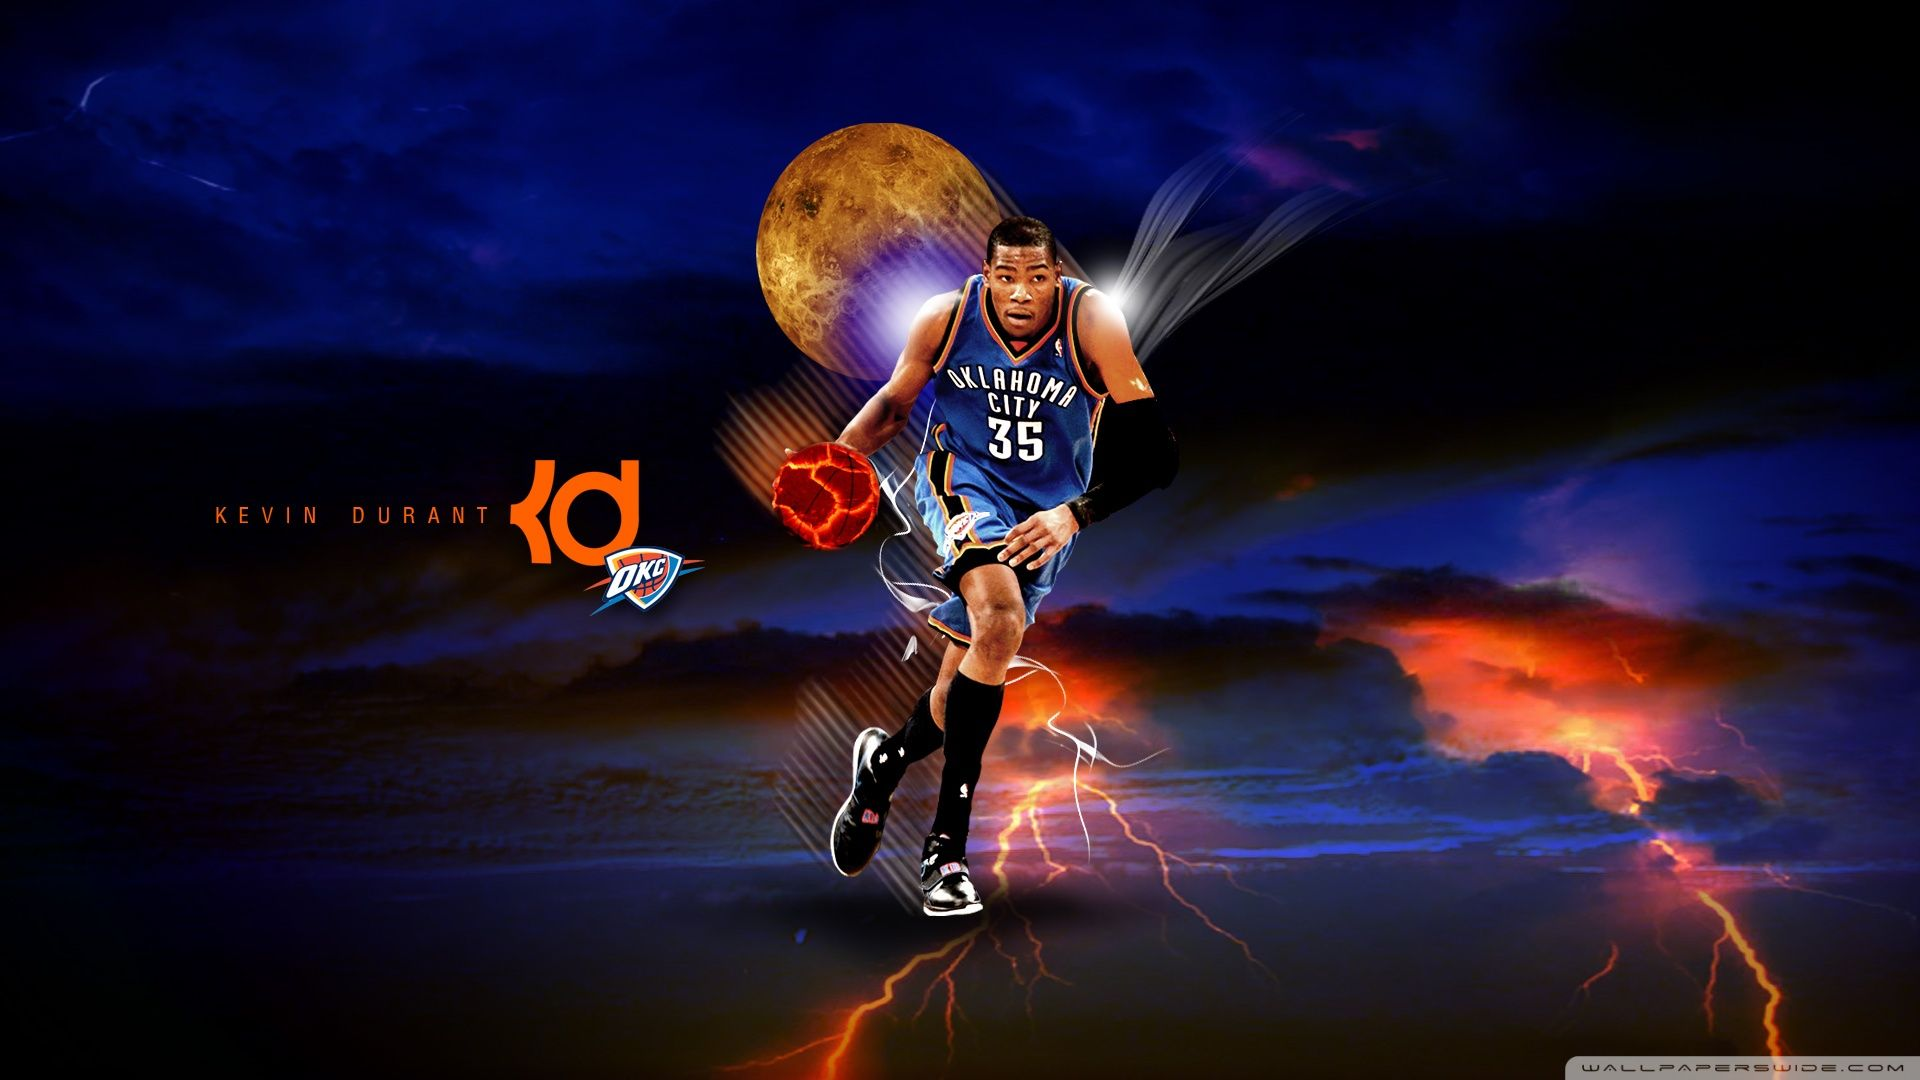 Awesome KD Wallpaper Design Ideas